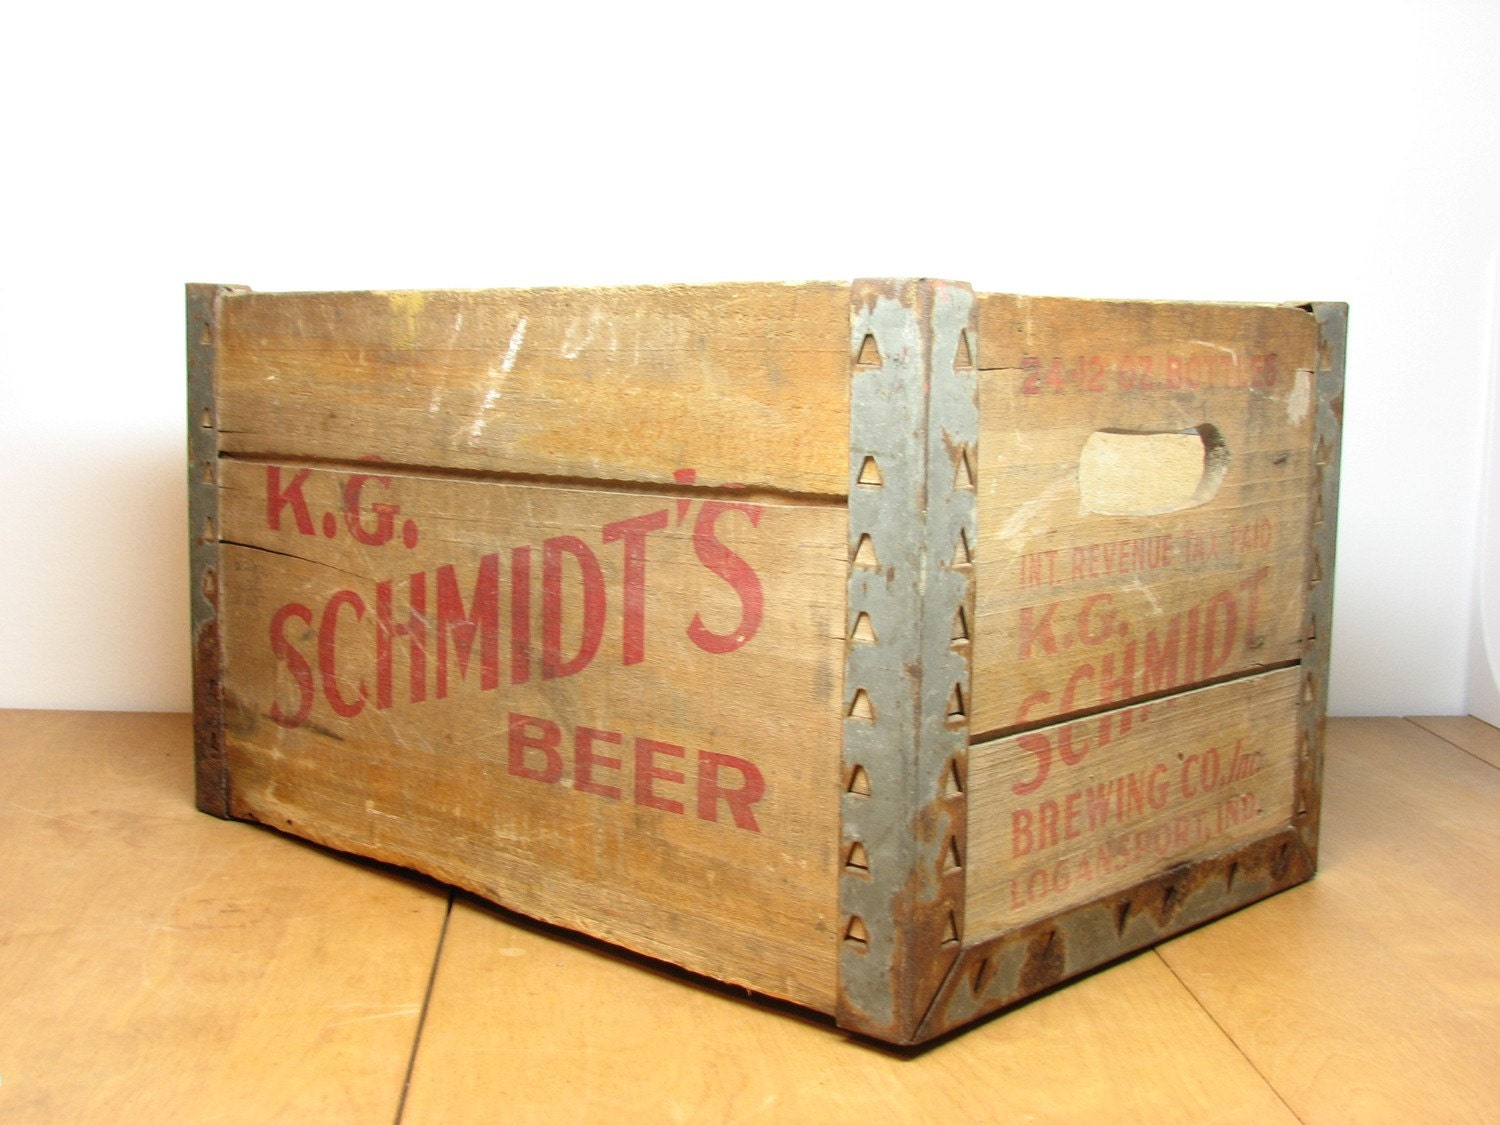 Vintage Wood Beer Crate Box K G Schmidt S By Bridgewoodplace